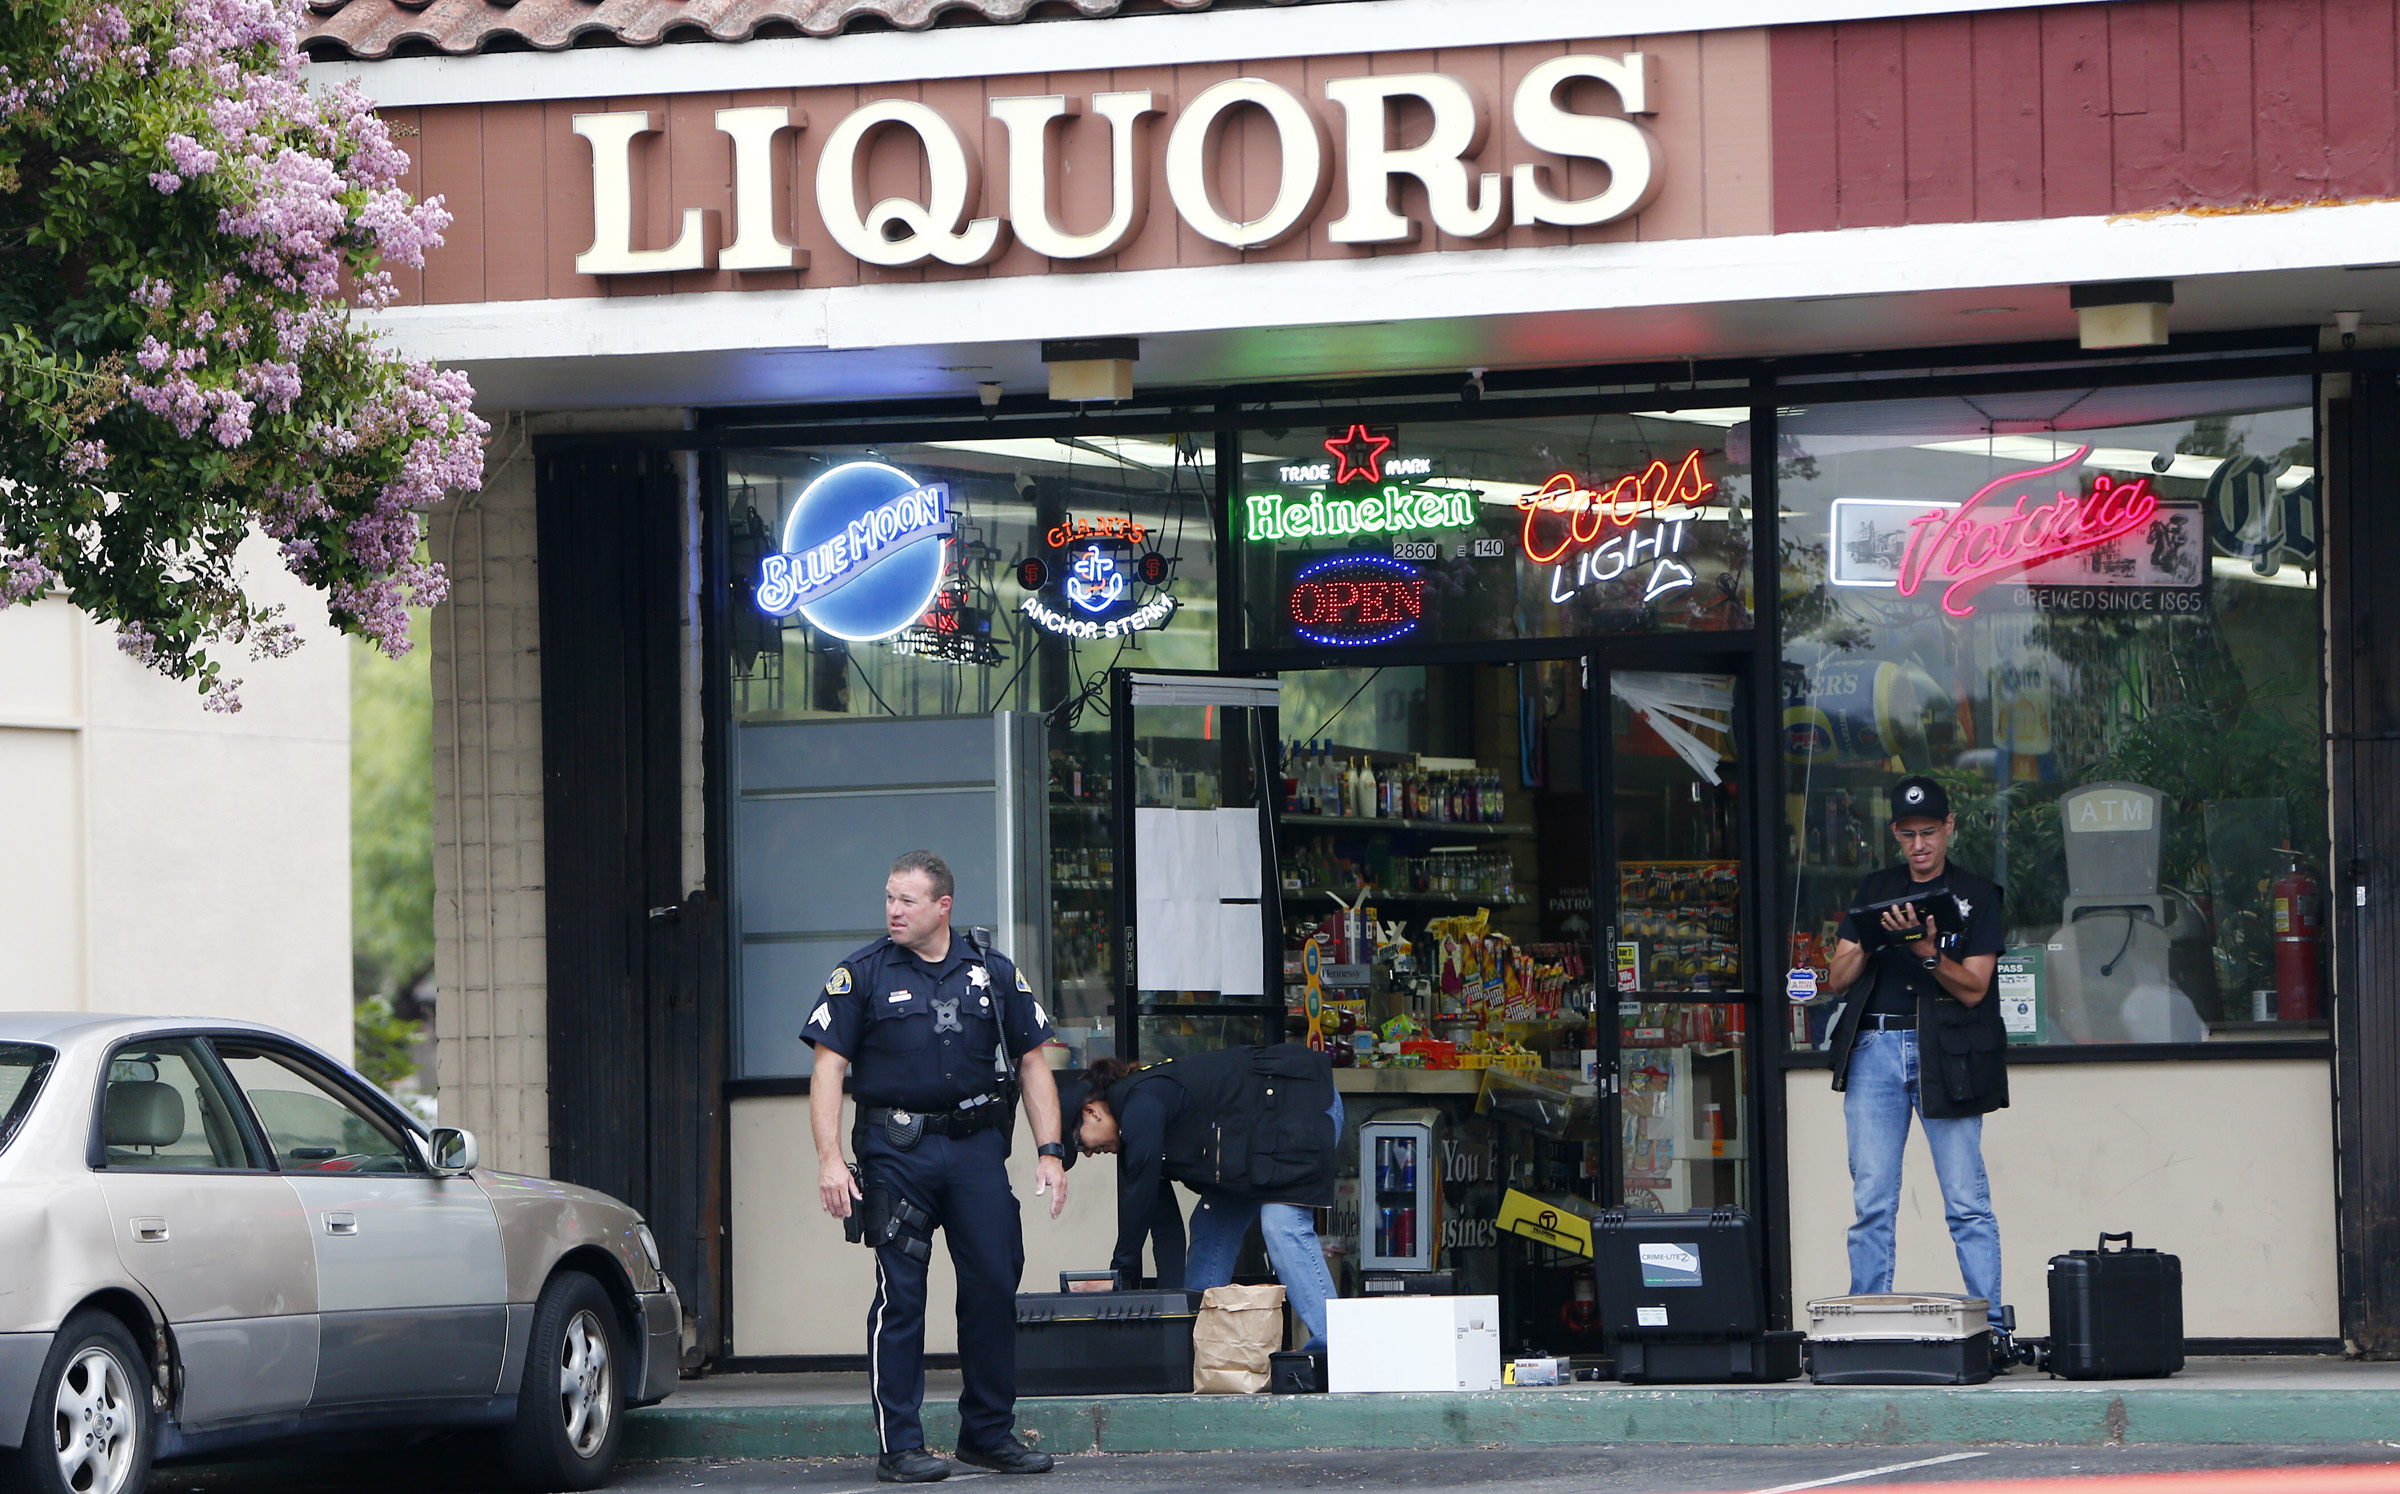 Ici Store San Jose Liquor Store Owner Found Shot To Death In Robbery